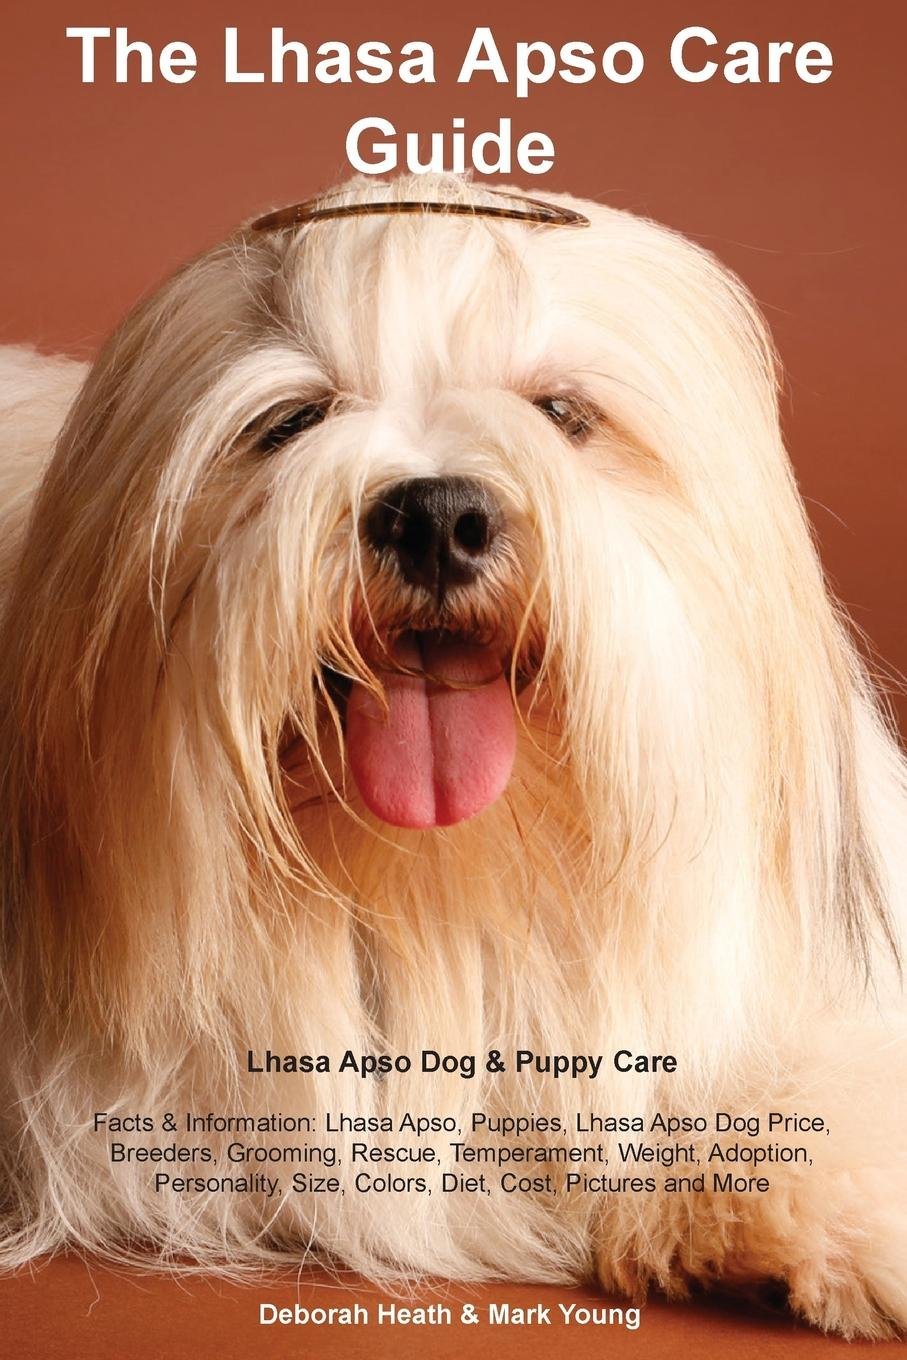 Lhasa Apso Care Guide Lhasa Apso Dog Puppy Care Facts